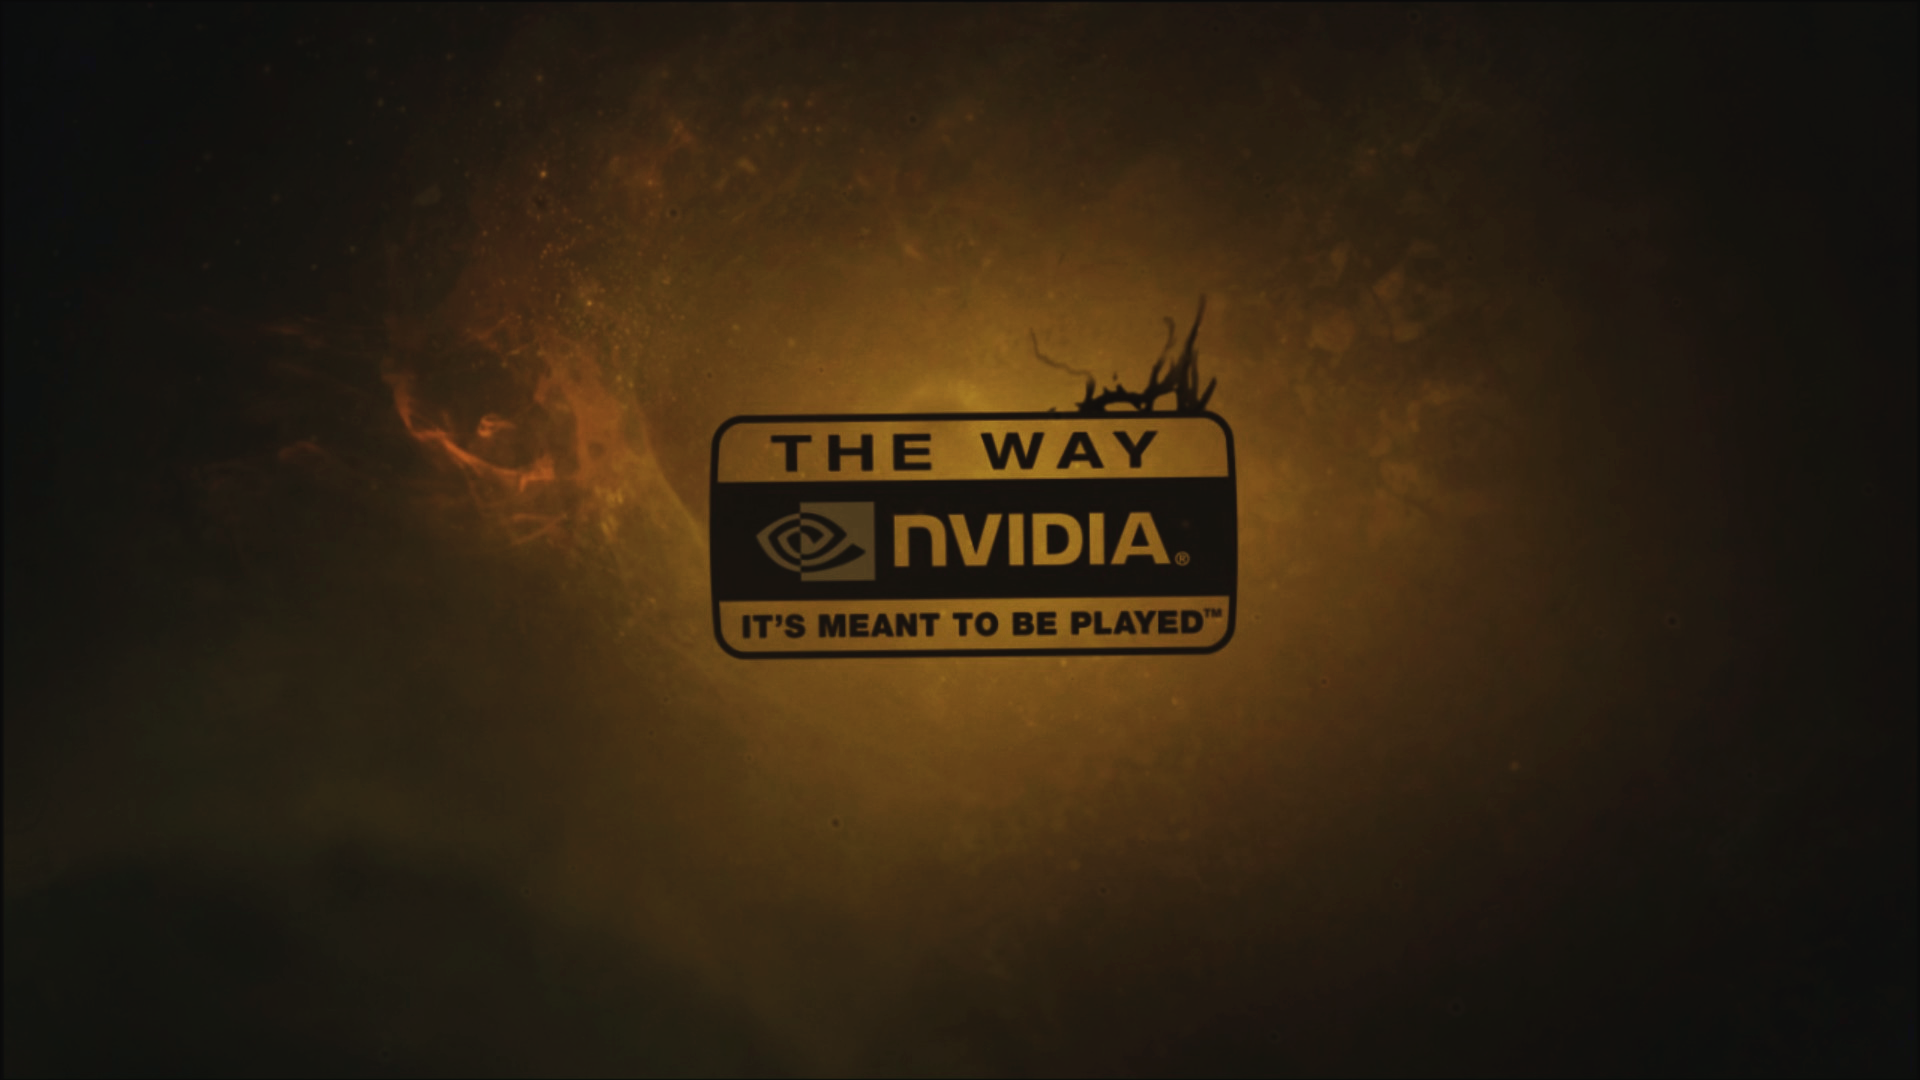 Nvidia Gaming Hd Computer 4k Wallpapers Images Backgrounds